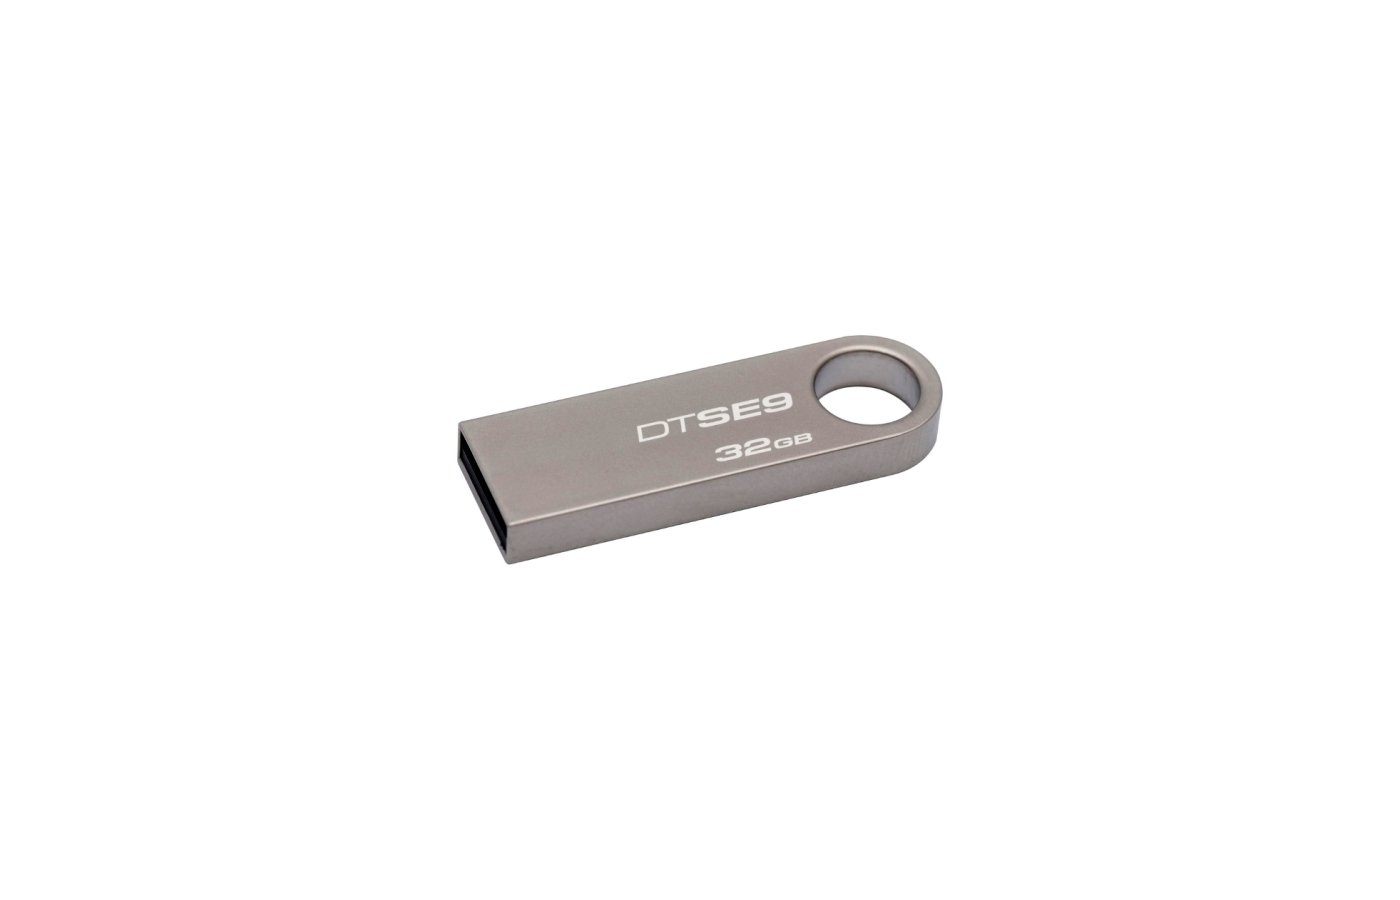 Флеш-диск Kingston 32Gb DataTraveler DTSE9H/32GB USB2.0 серебристый